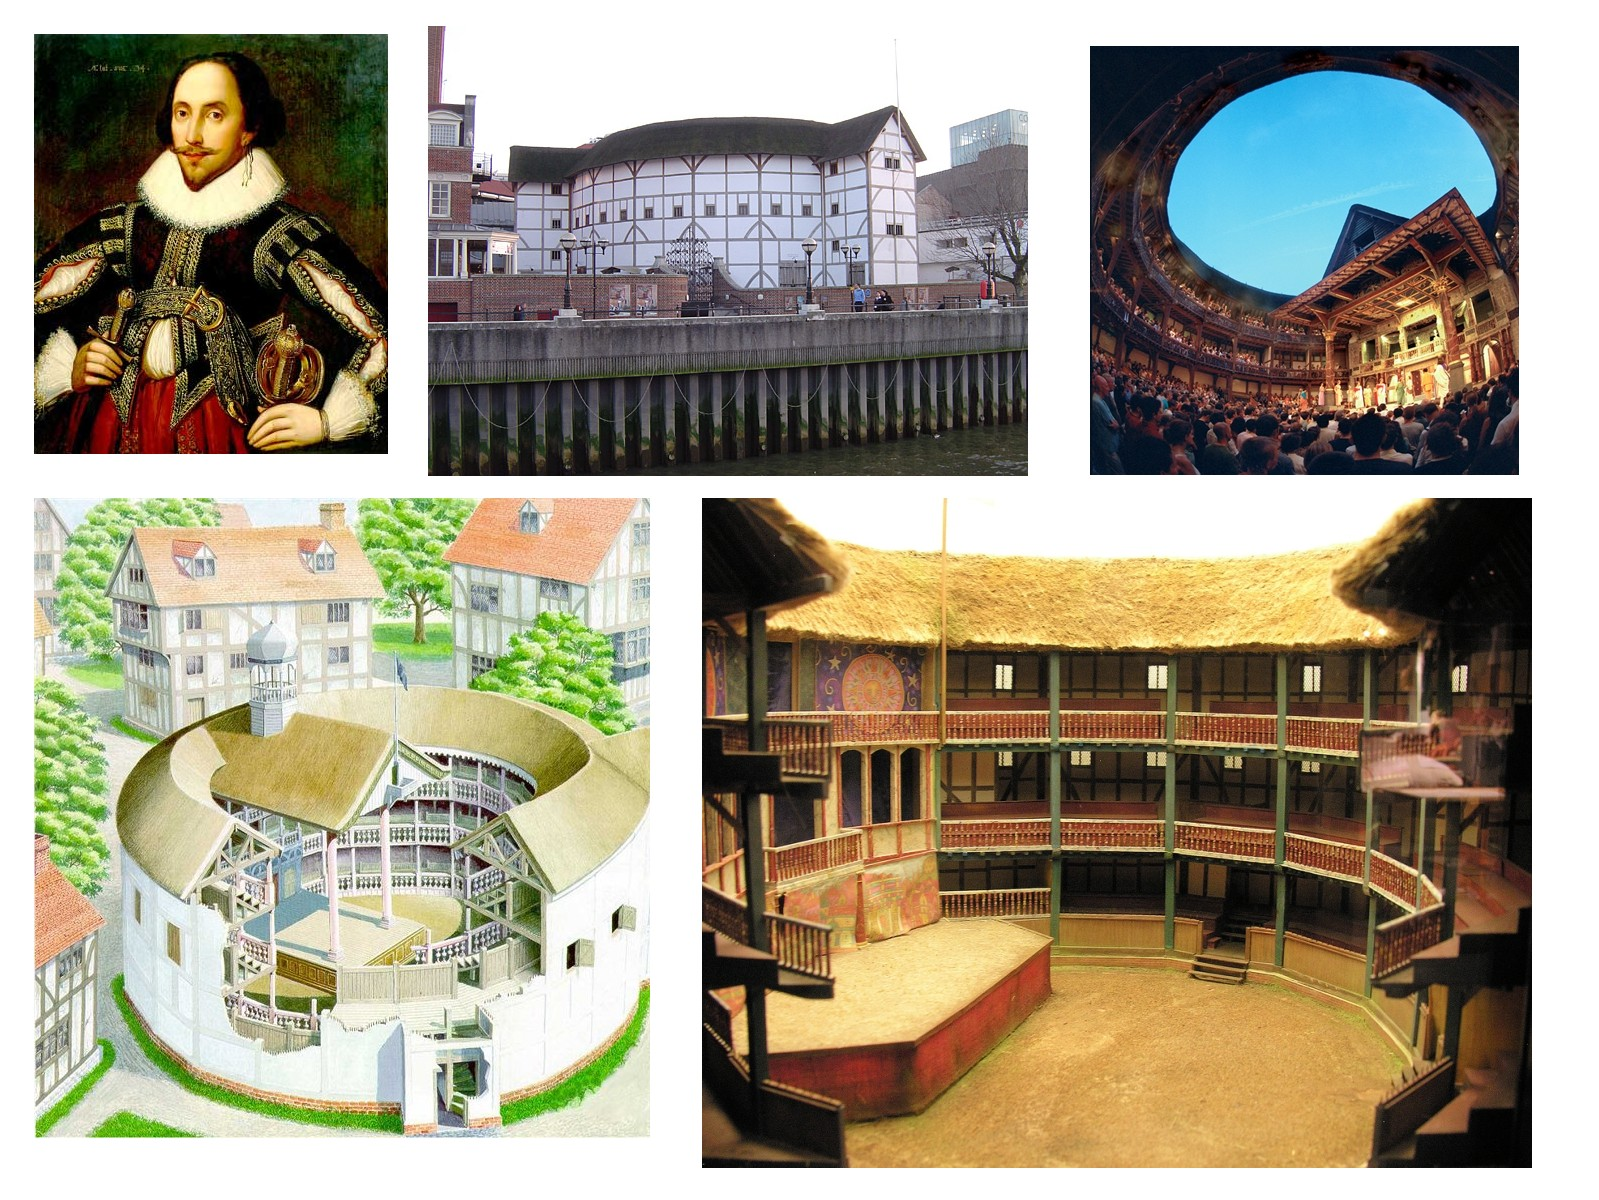 an introduction to william shakespeare and the globe theatre Lesson four - the globe theatre syllabus outcomes: 13 compose imaginative, factual and critical texts for different purposes, audiences and contexts ls 3 used technology and aids to communicate with a range of audiences.